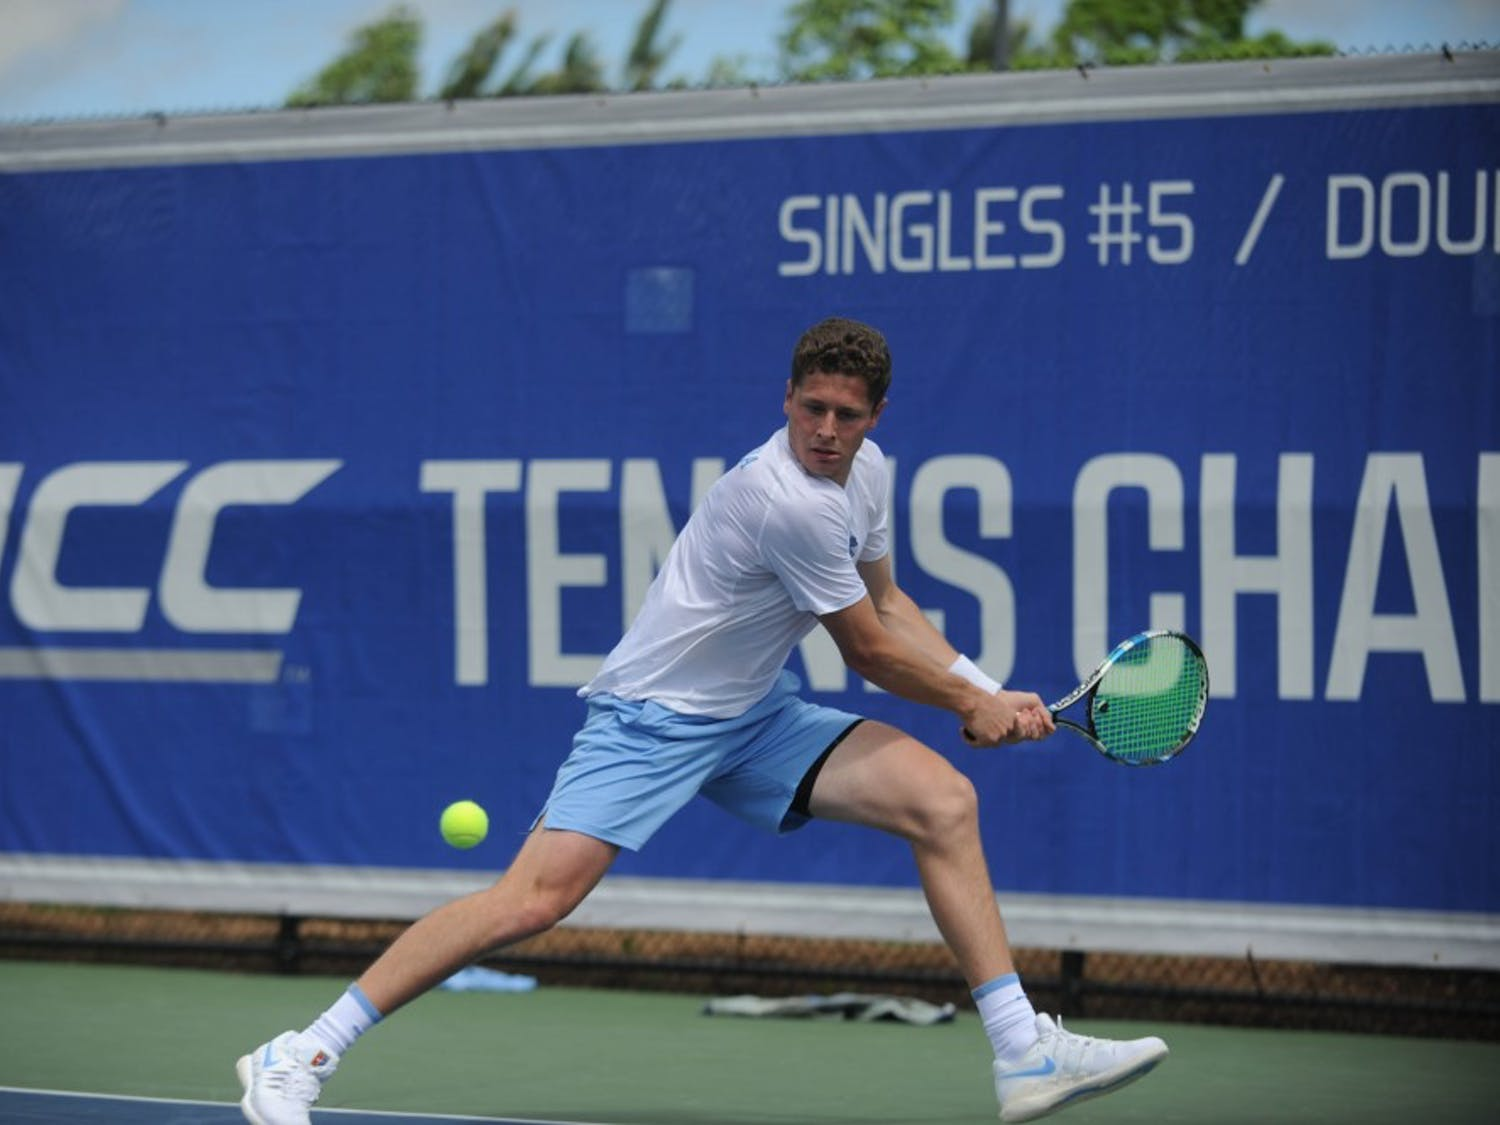 Senior Blaine Boyden backhands the tennis ball at the ACC tournament semifinals. UNC played against Virginia and lost 3-4. Boyden won his doubles match with junior William Blumberg and his singles match.